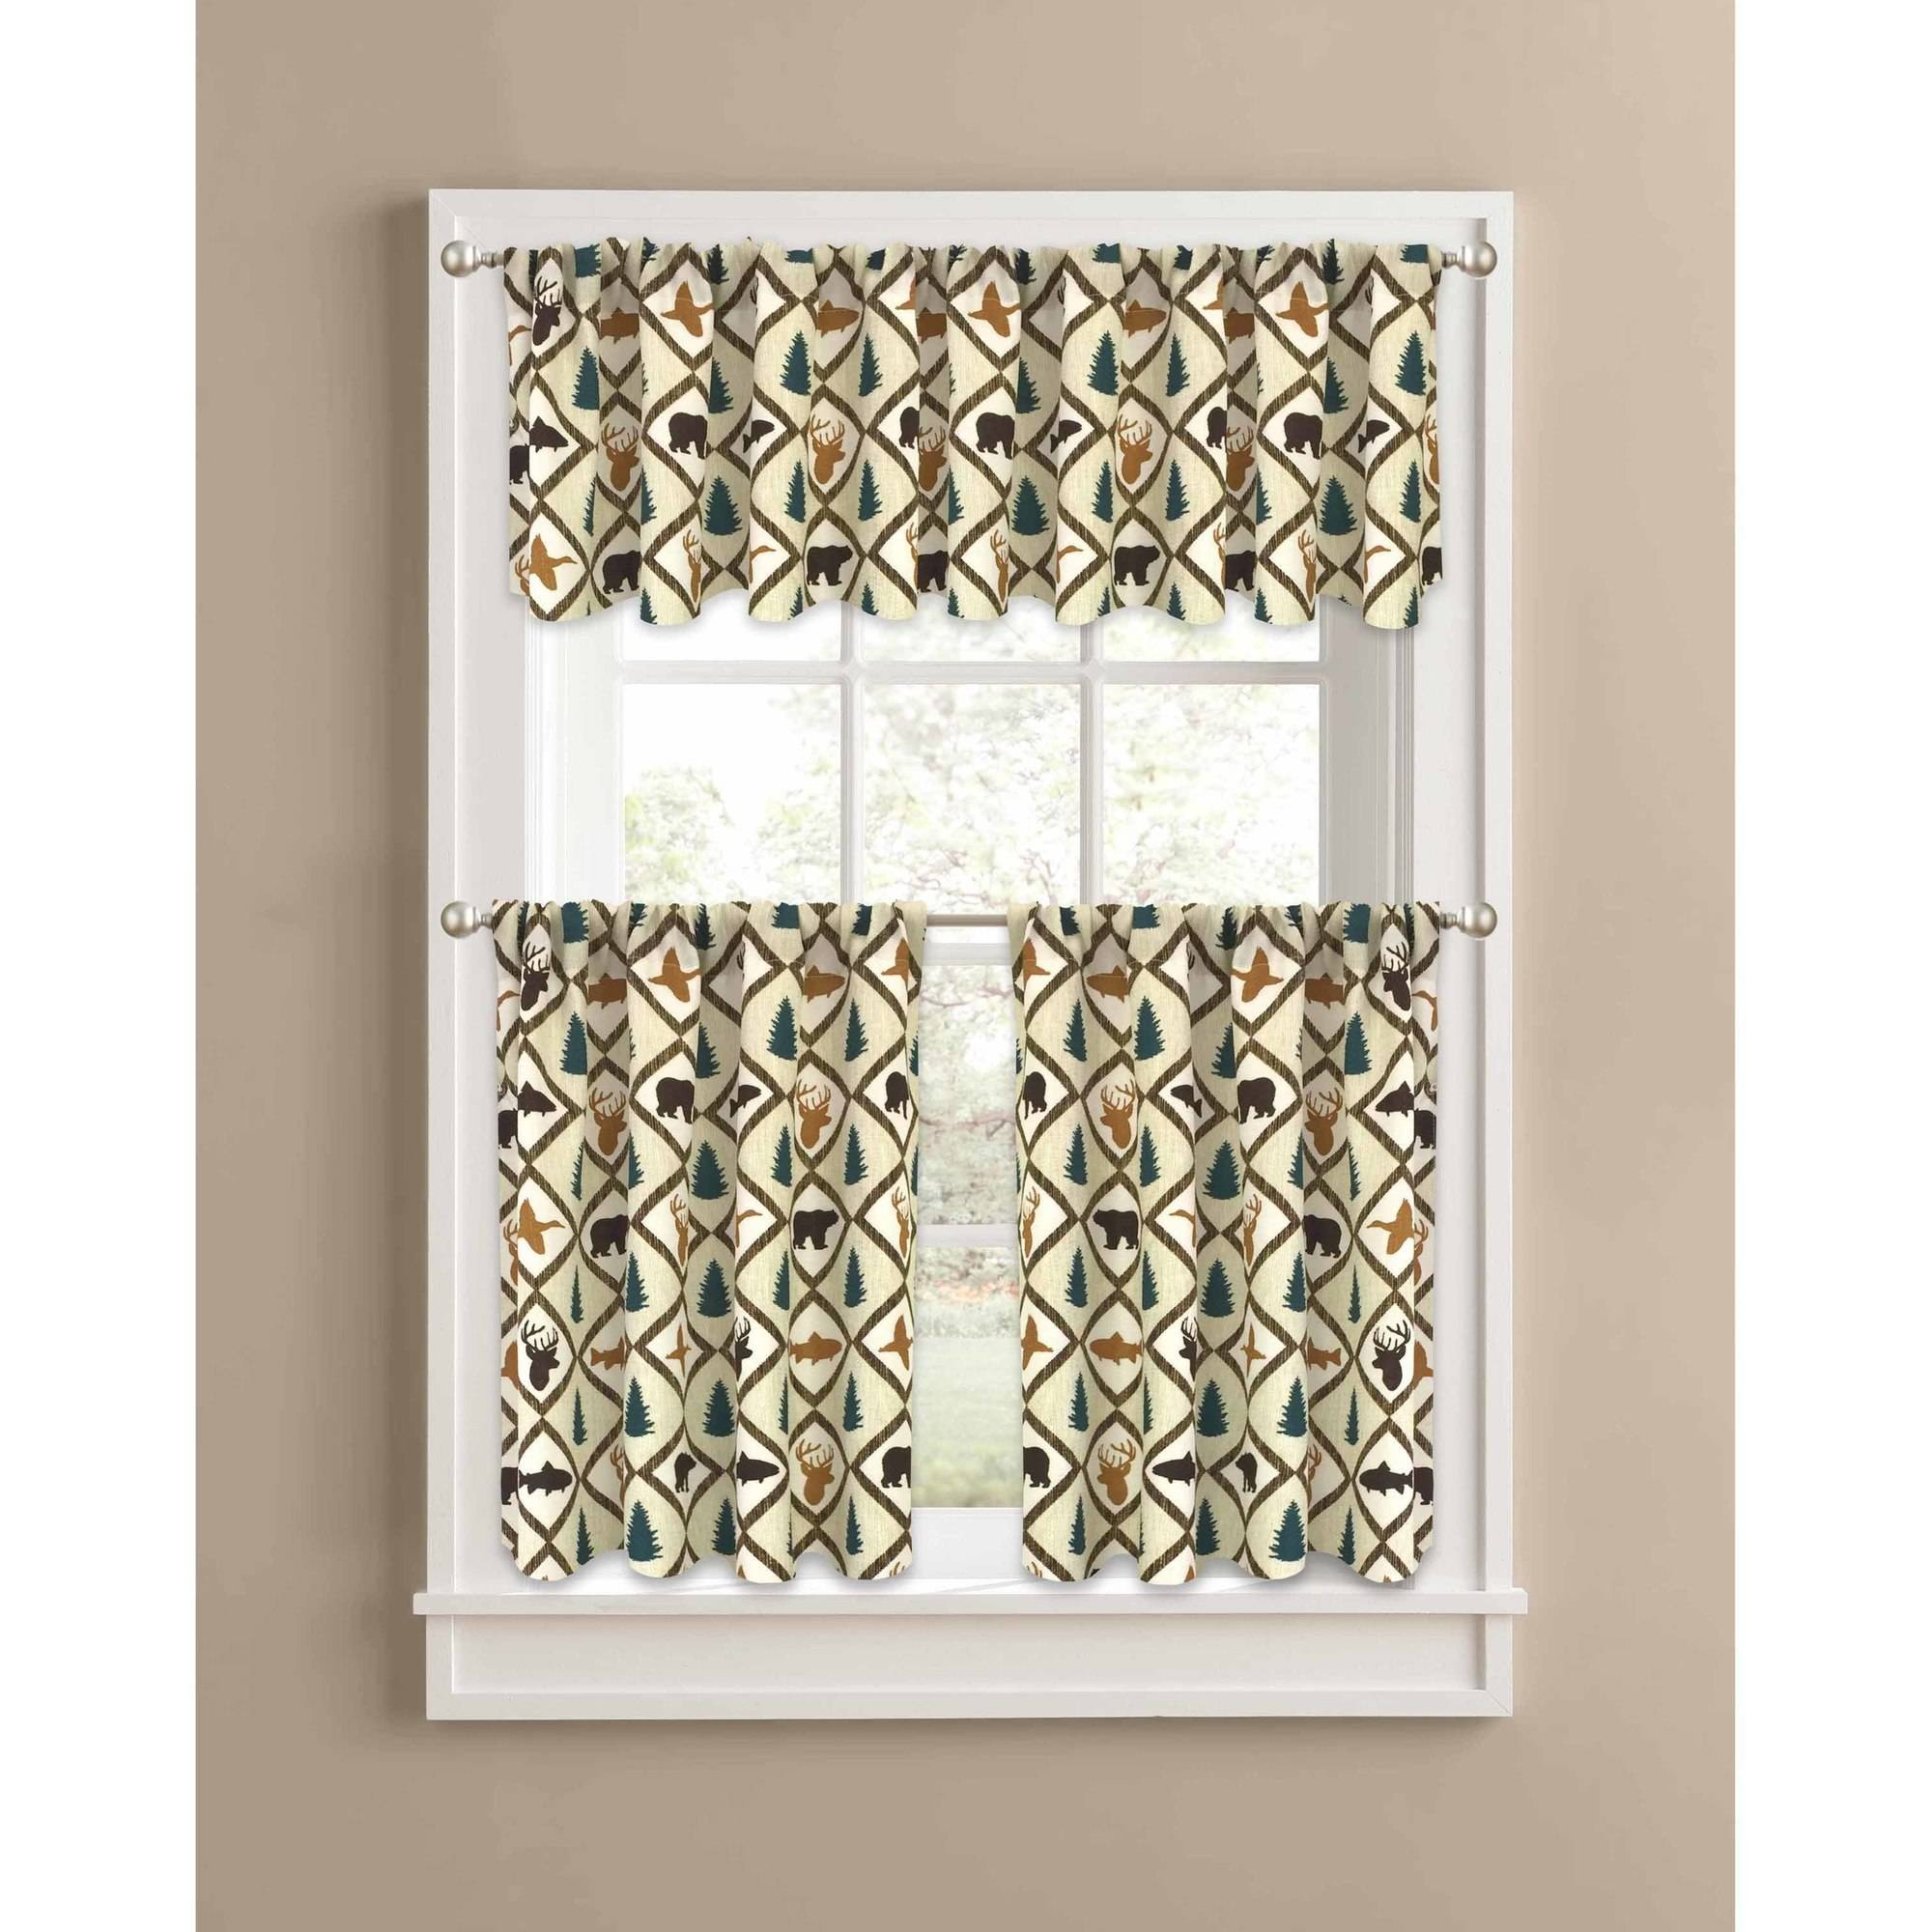 Better Homes and Gardens Brown Cabin Quilt Valance Kitchen Curtains, Set of 2 or Valance by Colordrift LLC